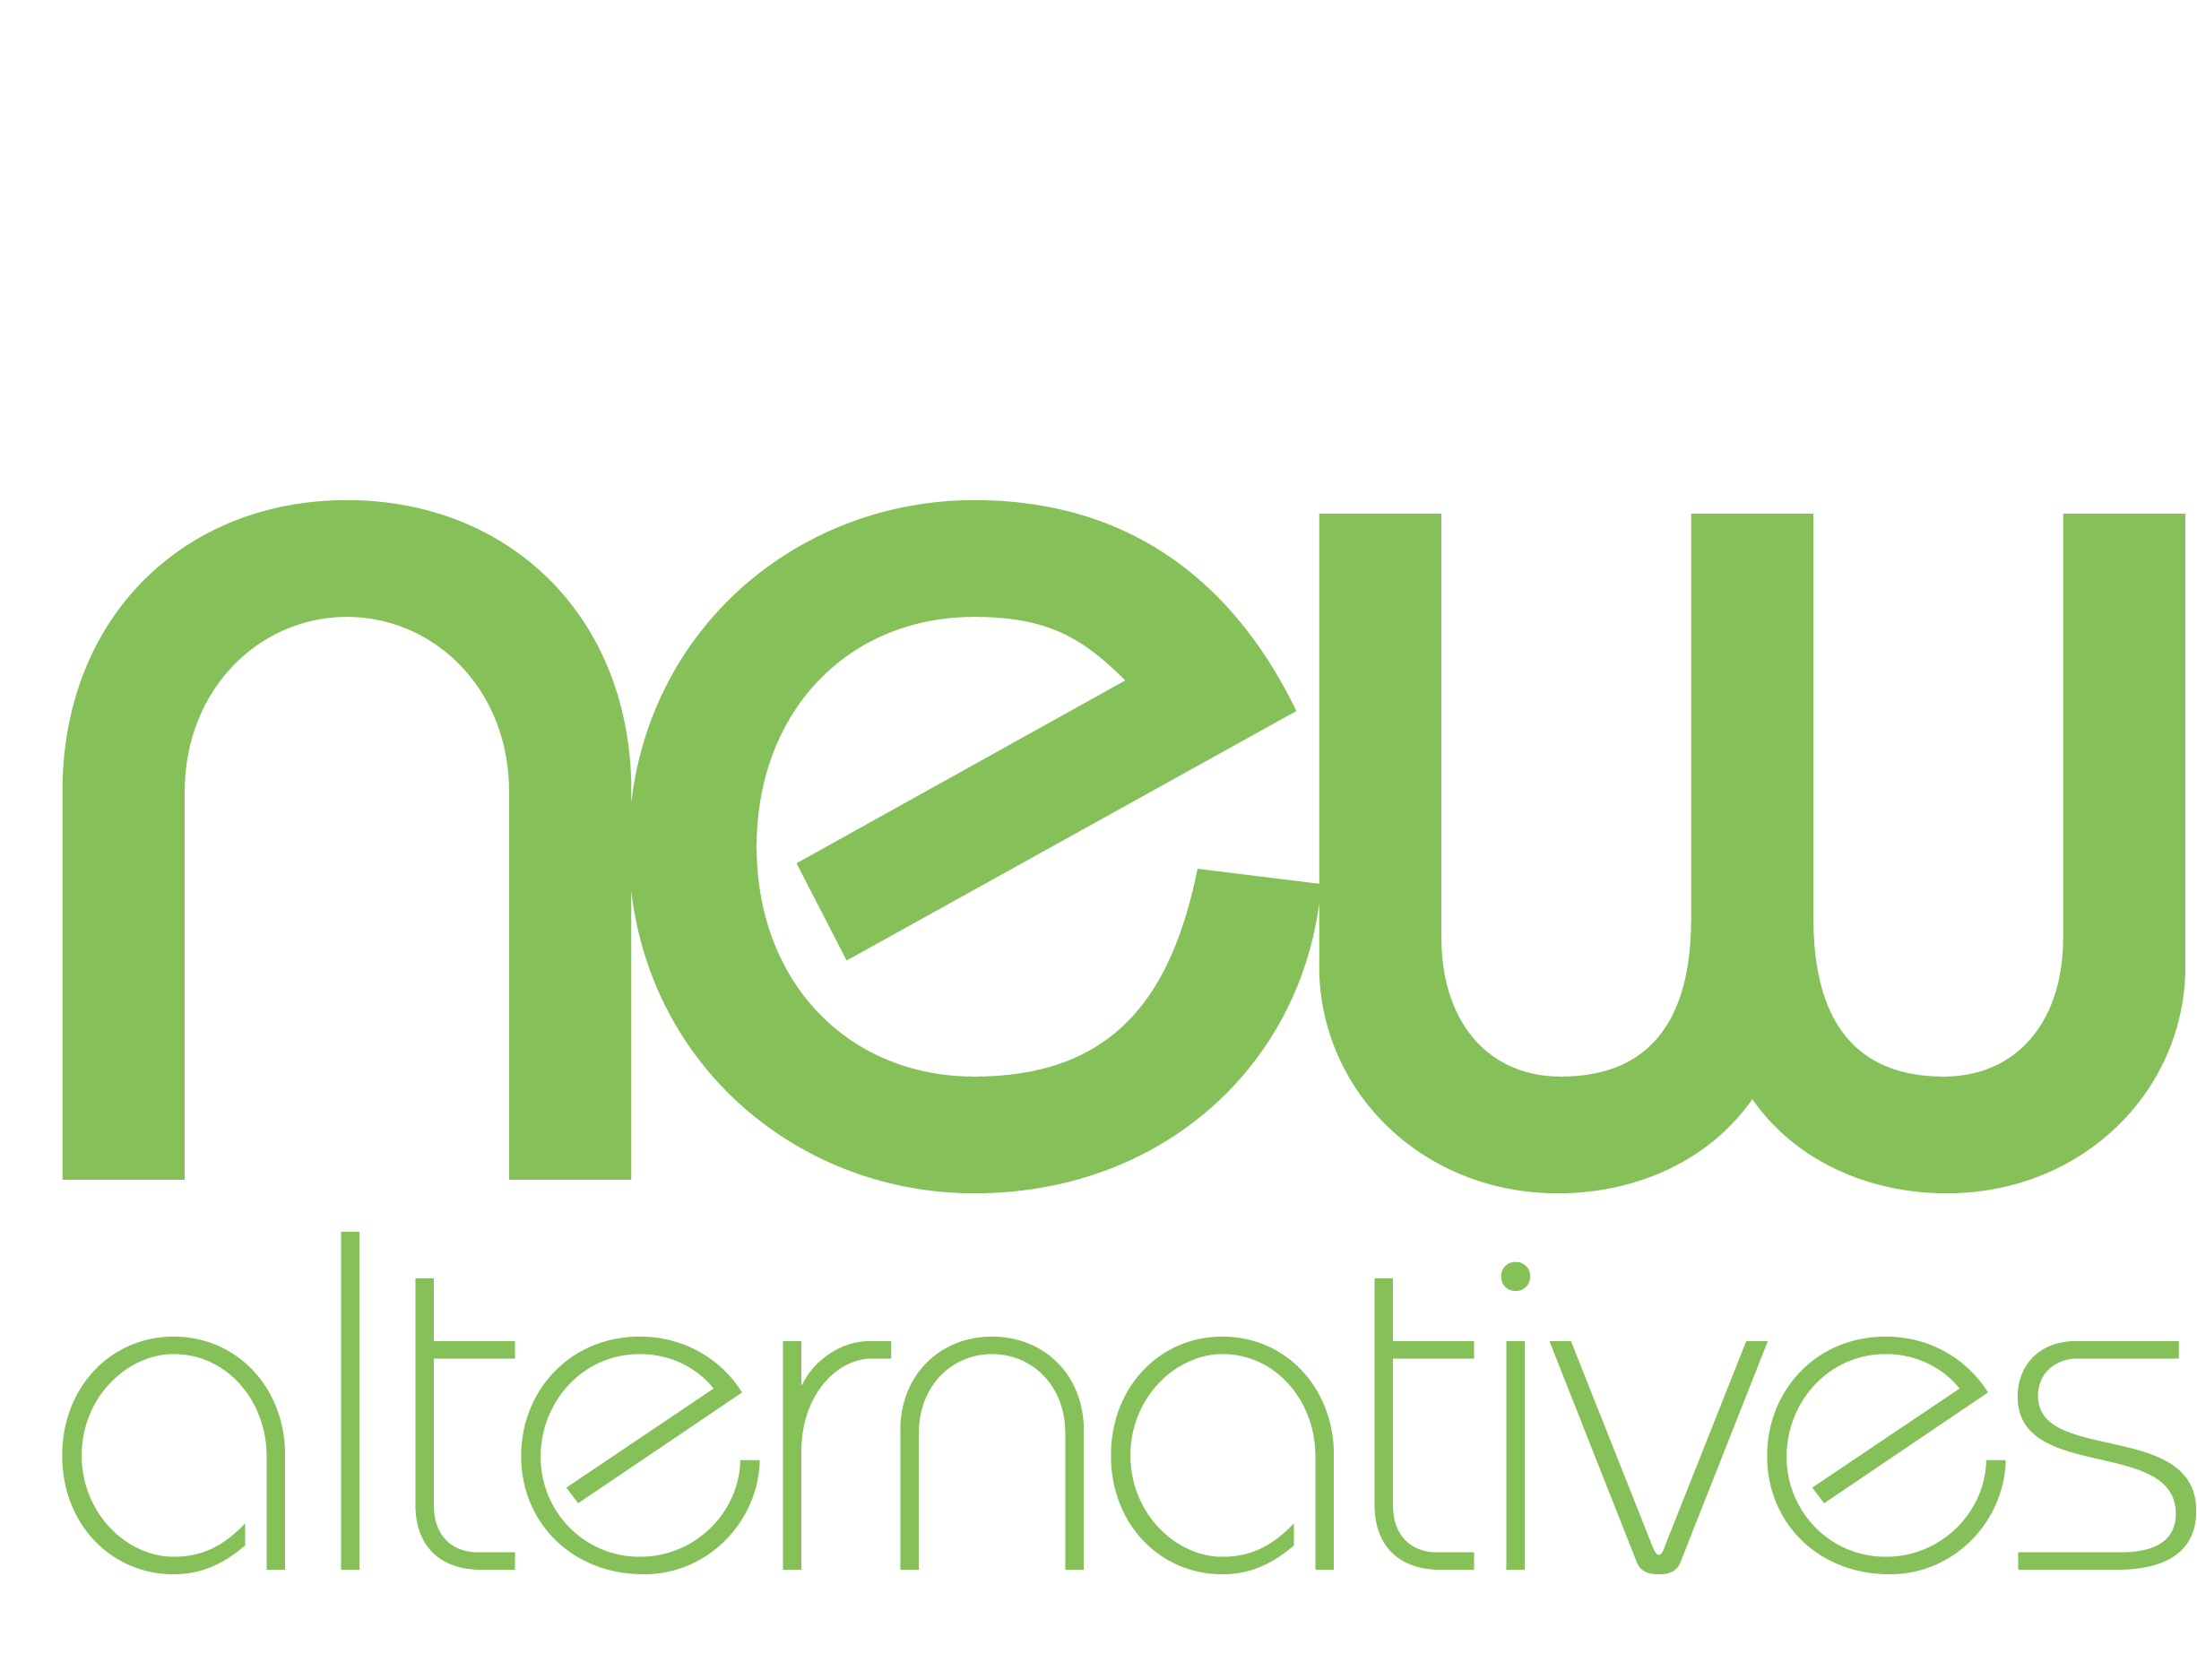 newalt_logo_green.png